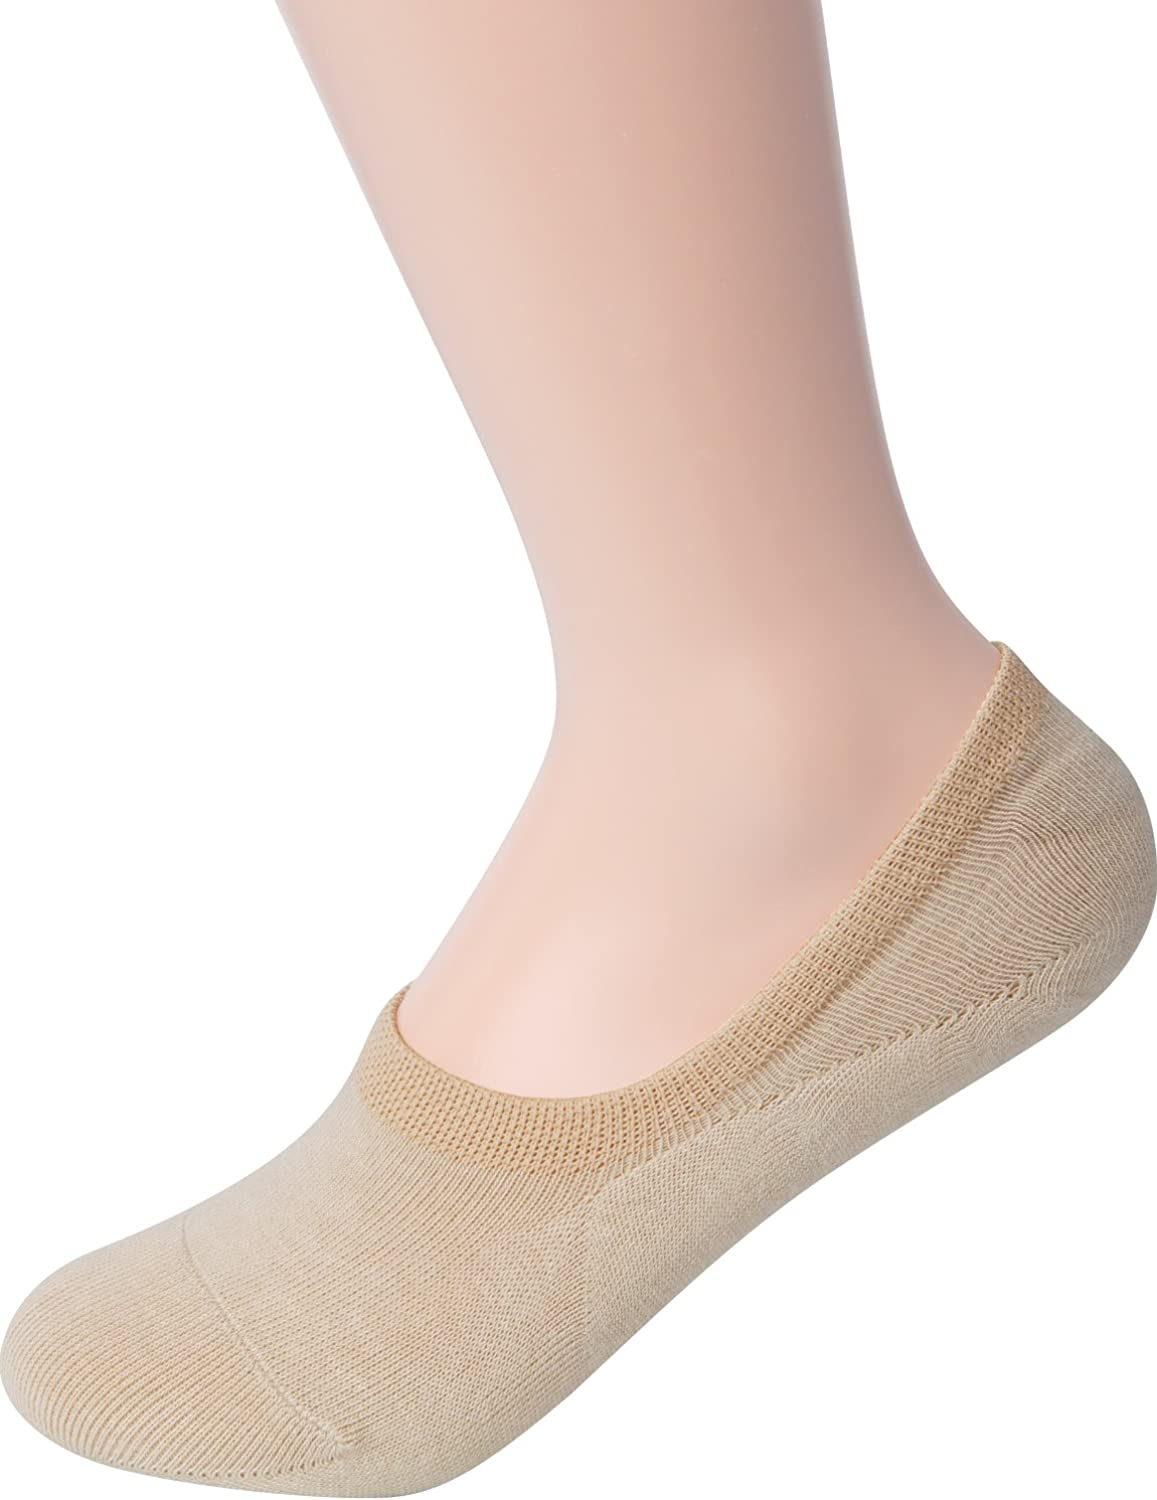 HASLRA Unisex Baby Little Girls' Little Boys' Excellent Stretch No Show Non-Slip Low Cut Socks 3-10 Pairs